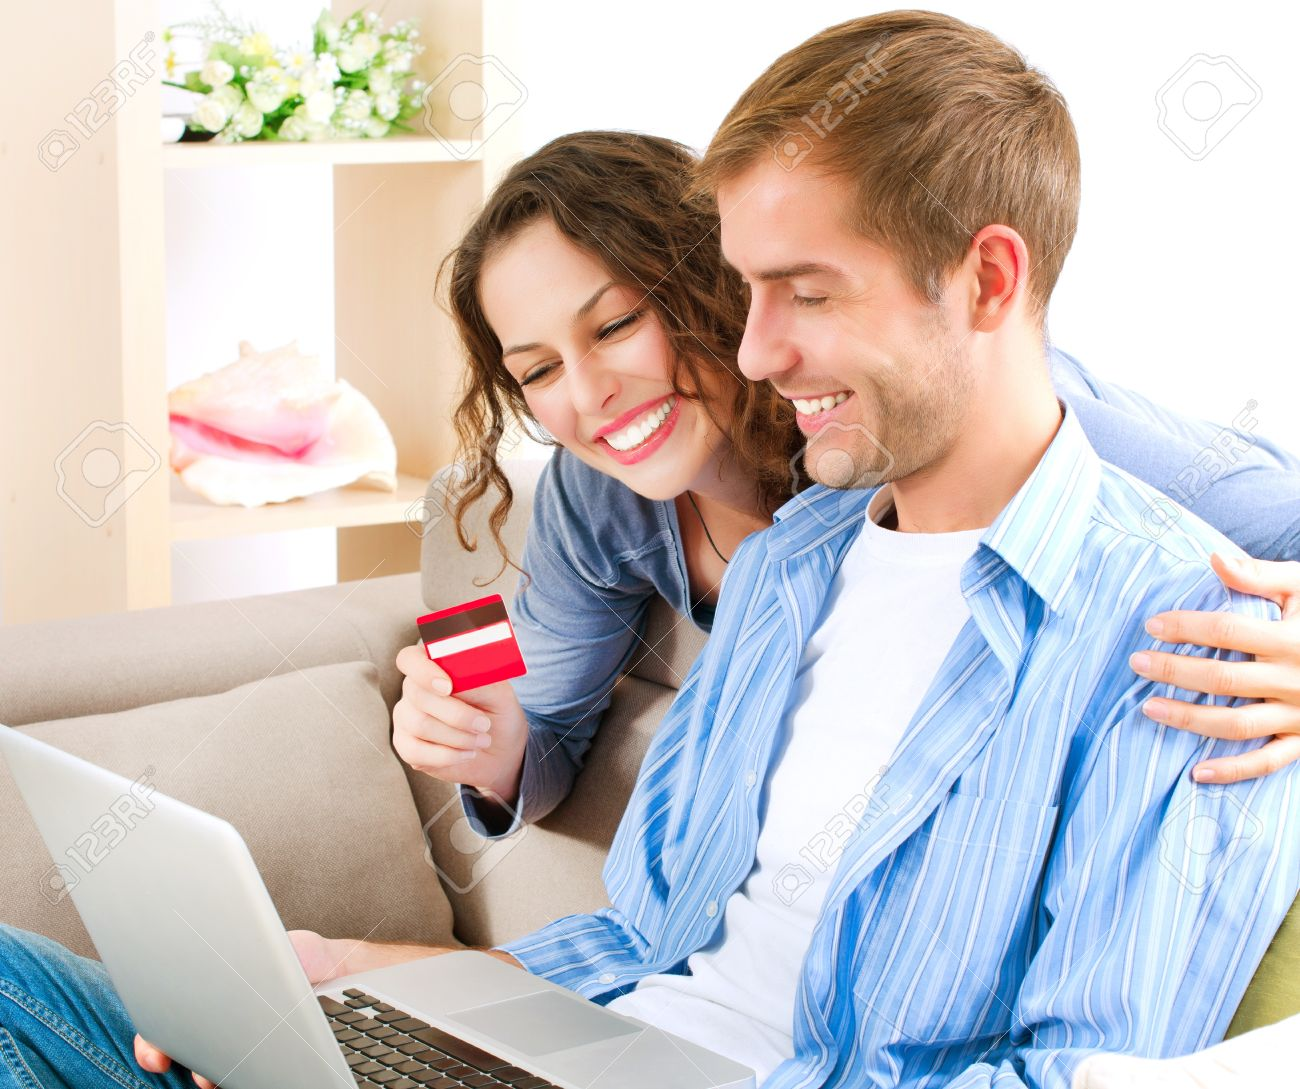 Online Shopping  Couple Using Credit Card to Internet Shop Stock Photo - 16052329